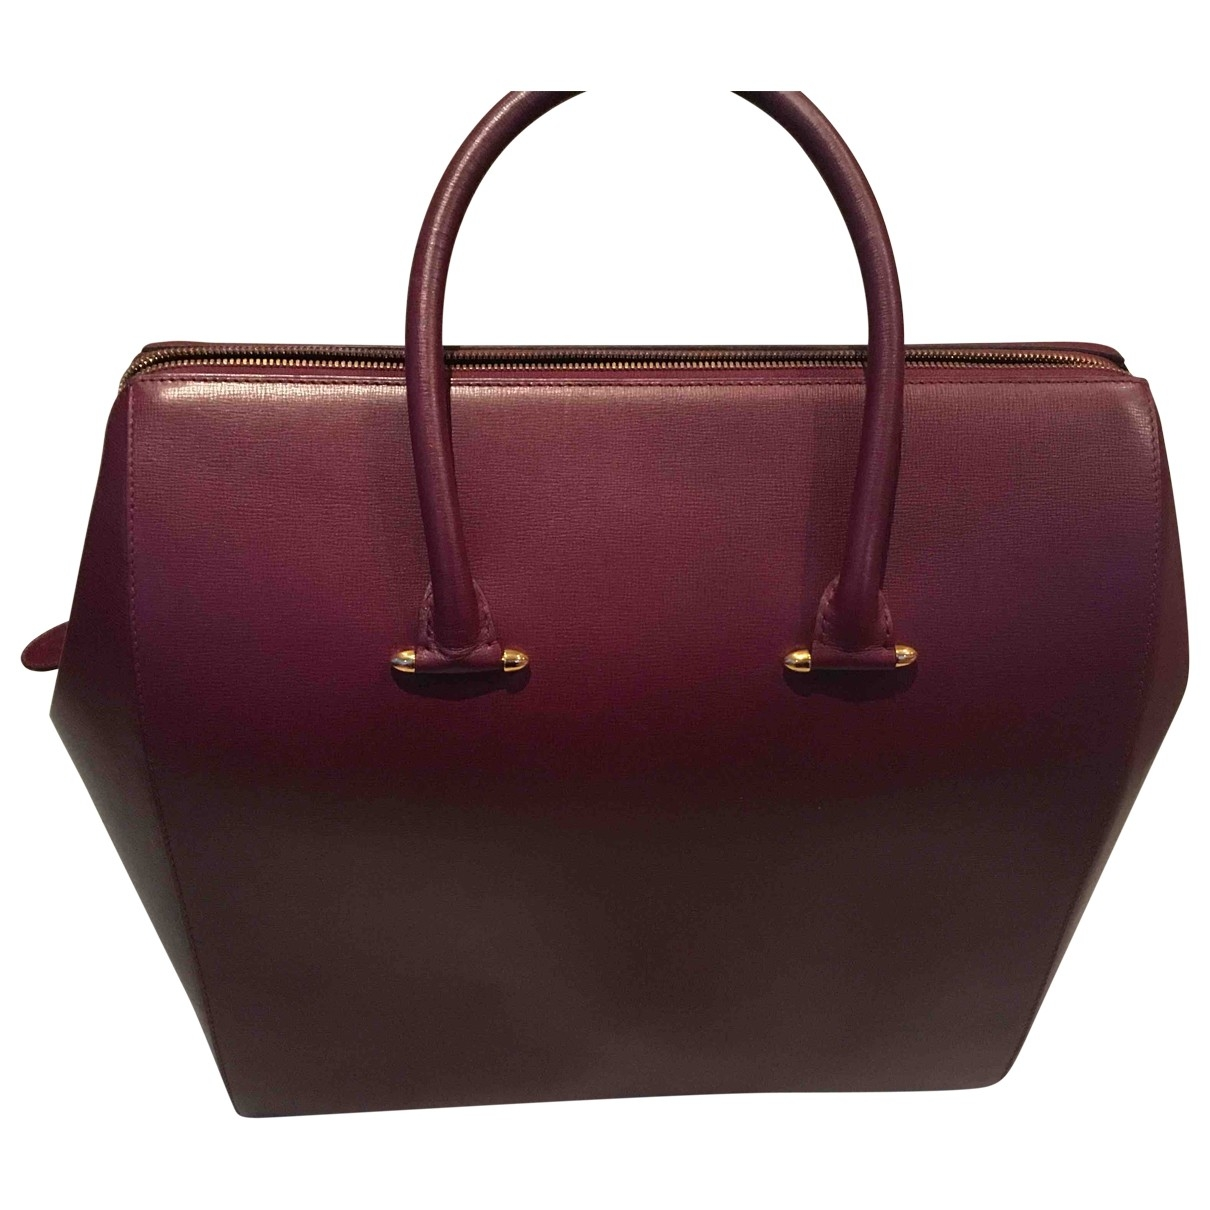 Cartier \N Burgundy Leather Travel bag for Women \N